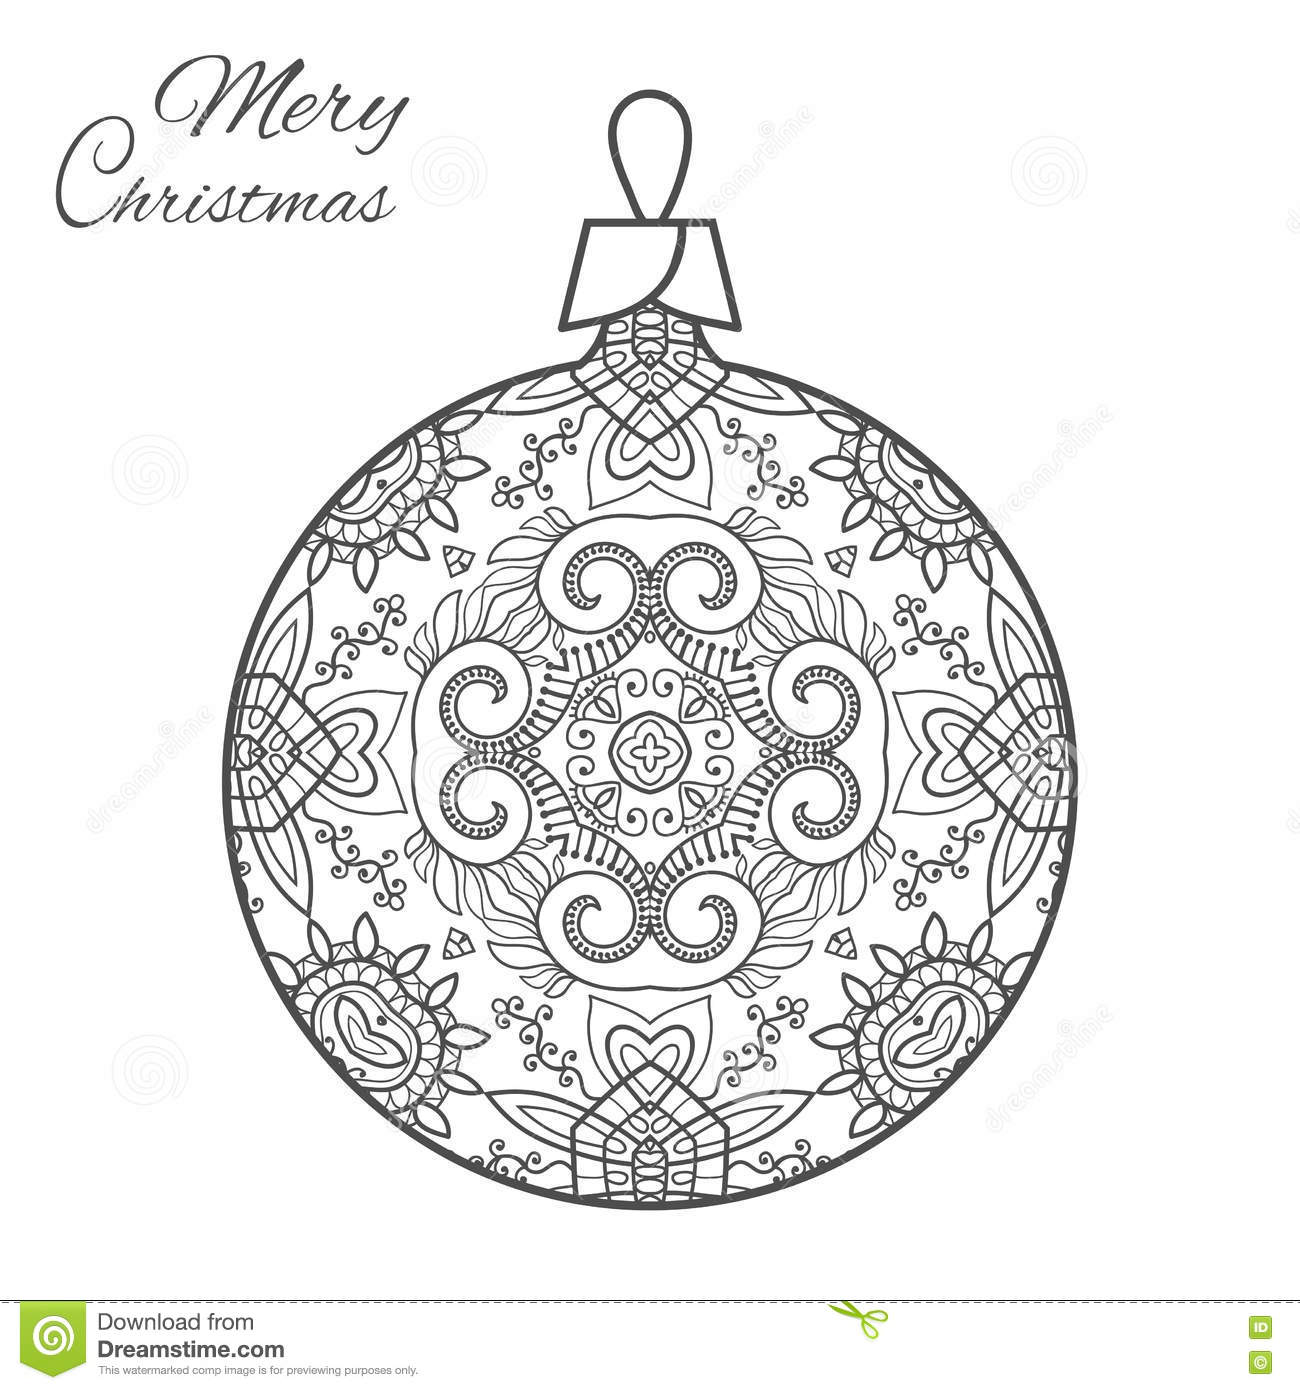 Religious Christmas - Doodle Art Coloring Page   Free Sketches Clipart